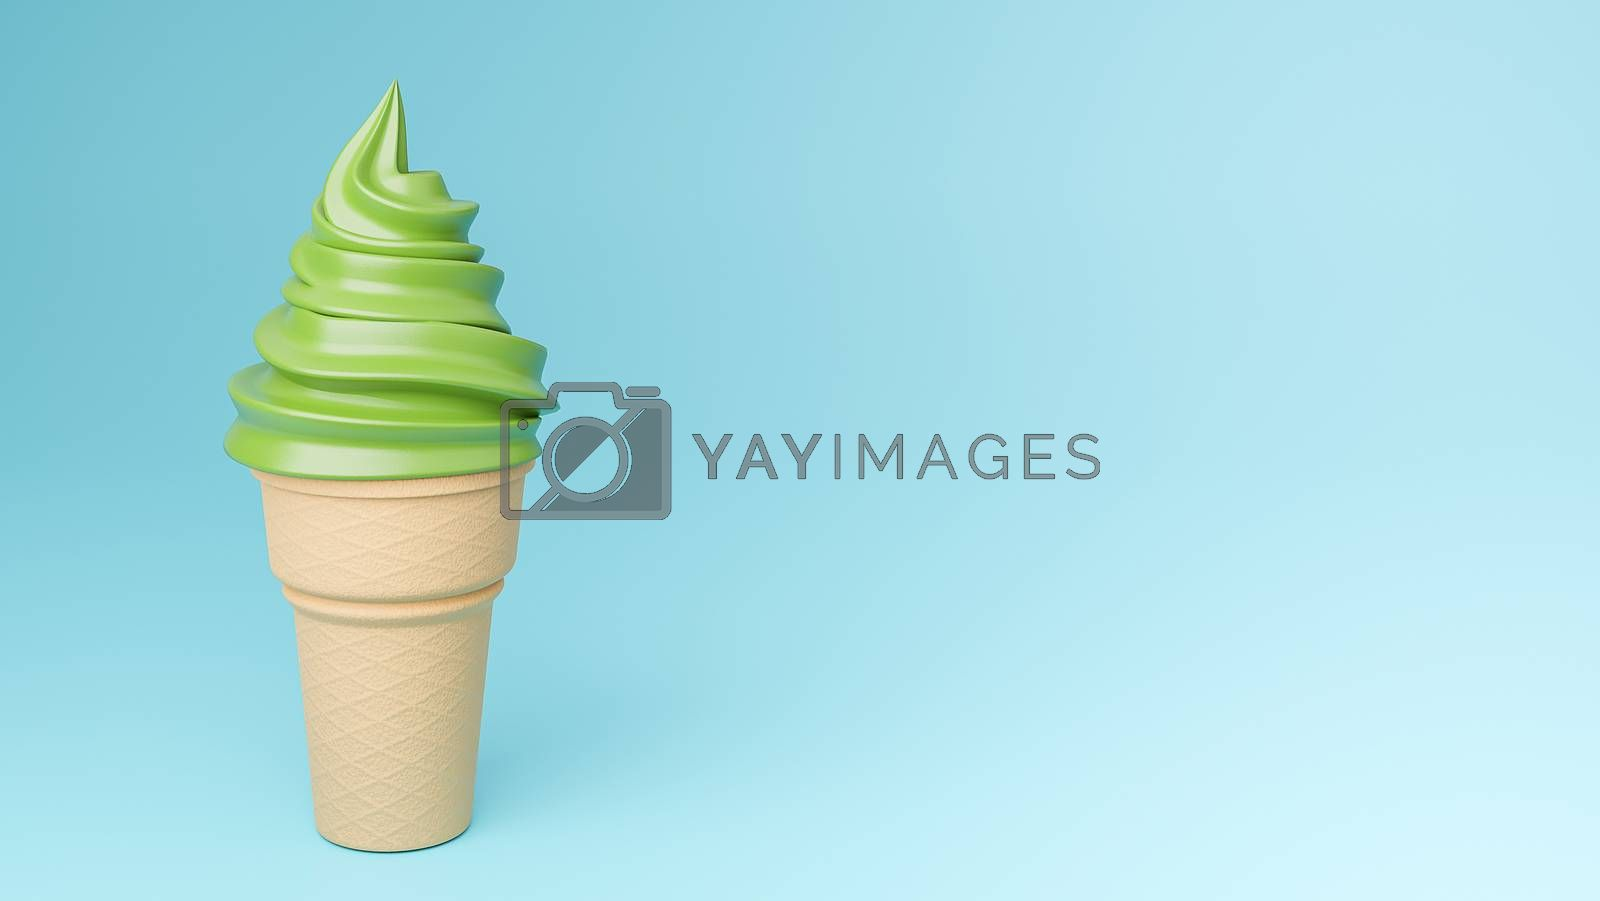 Soft serve ice cream of green tea flavours on crispy cone on blue background.,3d model and illustration.